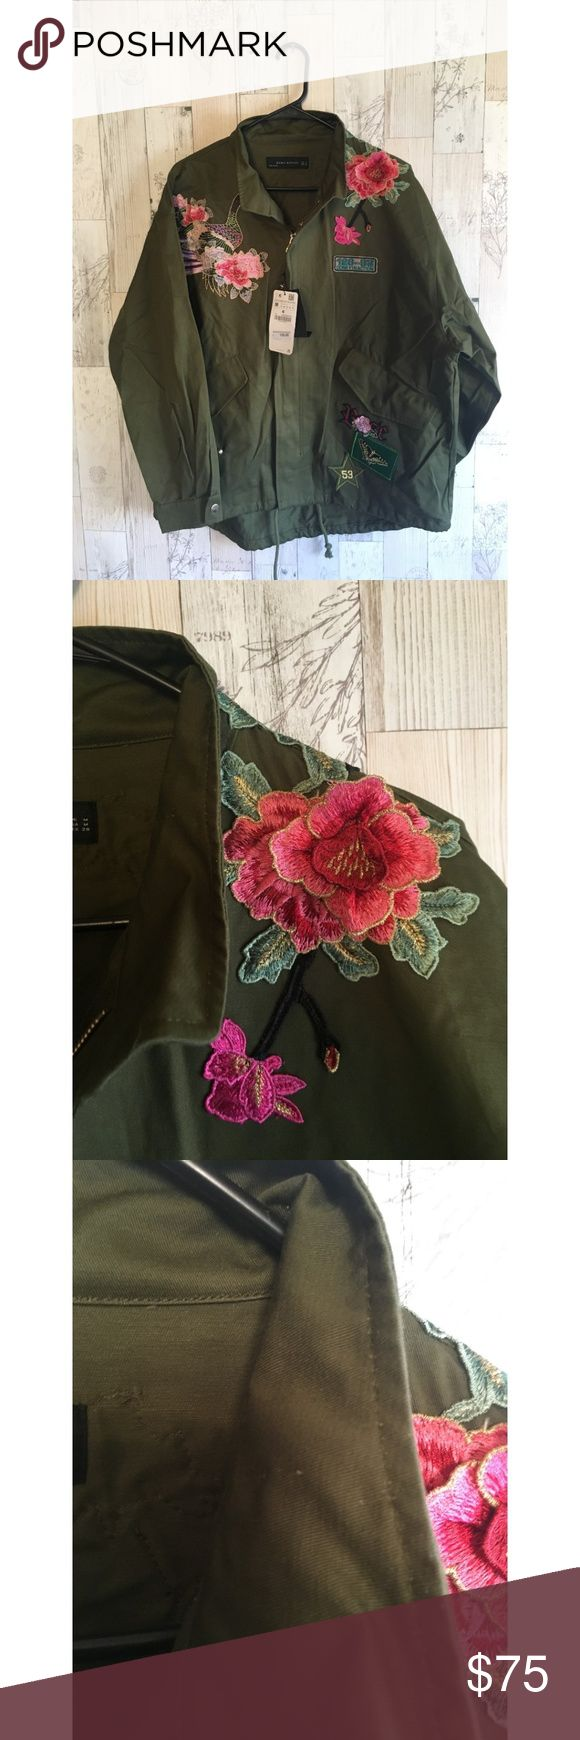 Green Embroidered Zara Jacket Patches Size Medium Green Embroidered Zara Jacket Patches Size Medium Small ding at collar  All my items come from a smoking household Zara Jackets & Coats